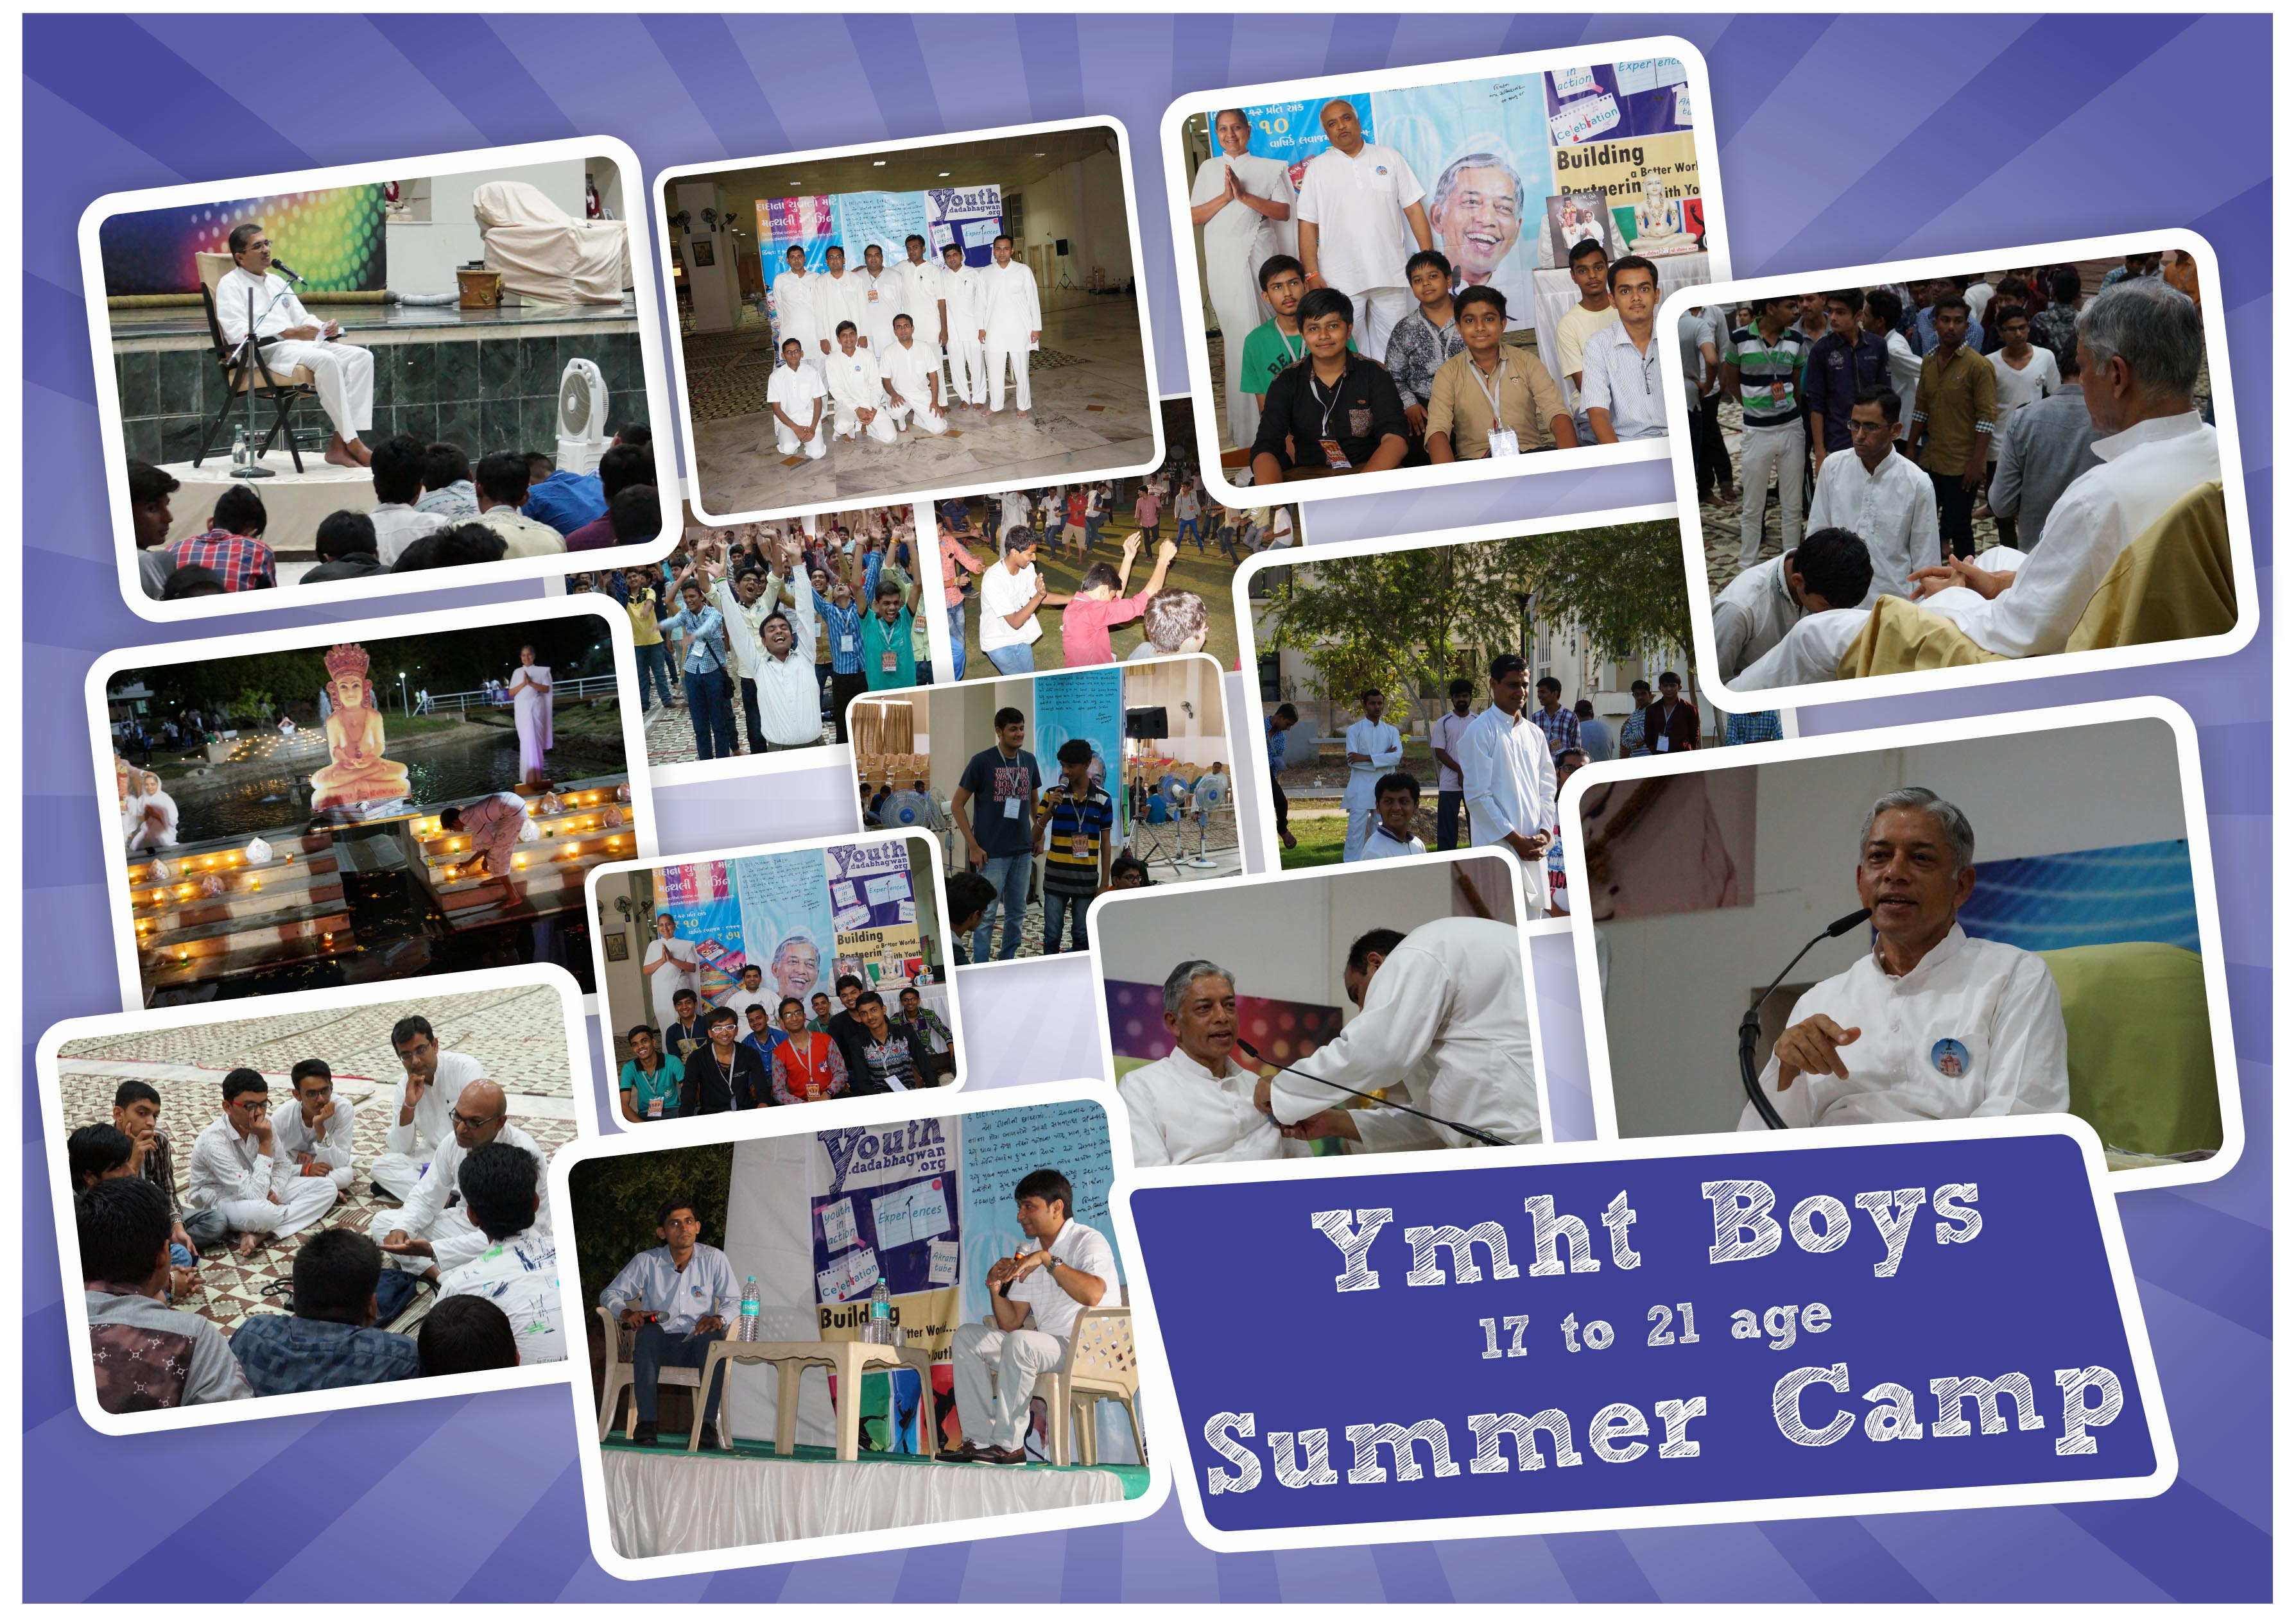 Ymht Bhaio Summer Camp 17 21 Age